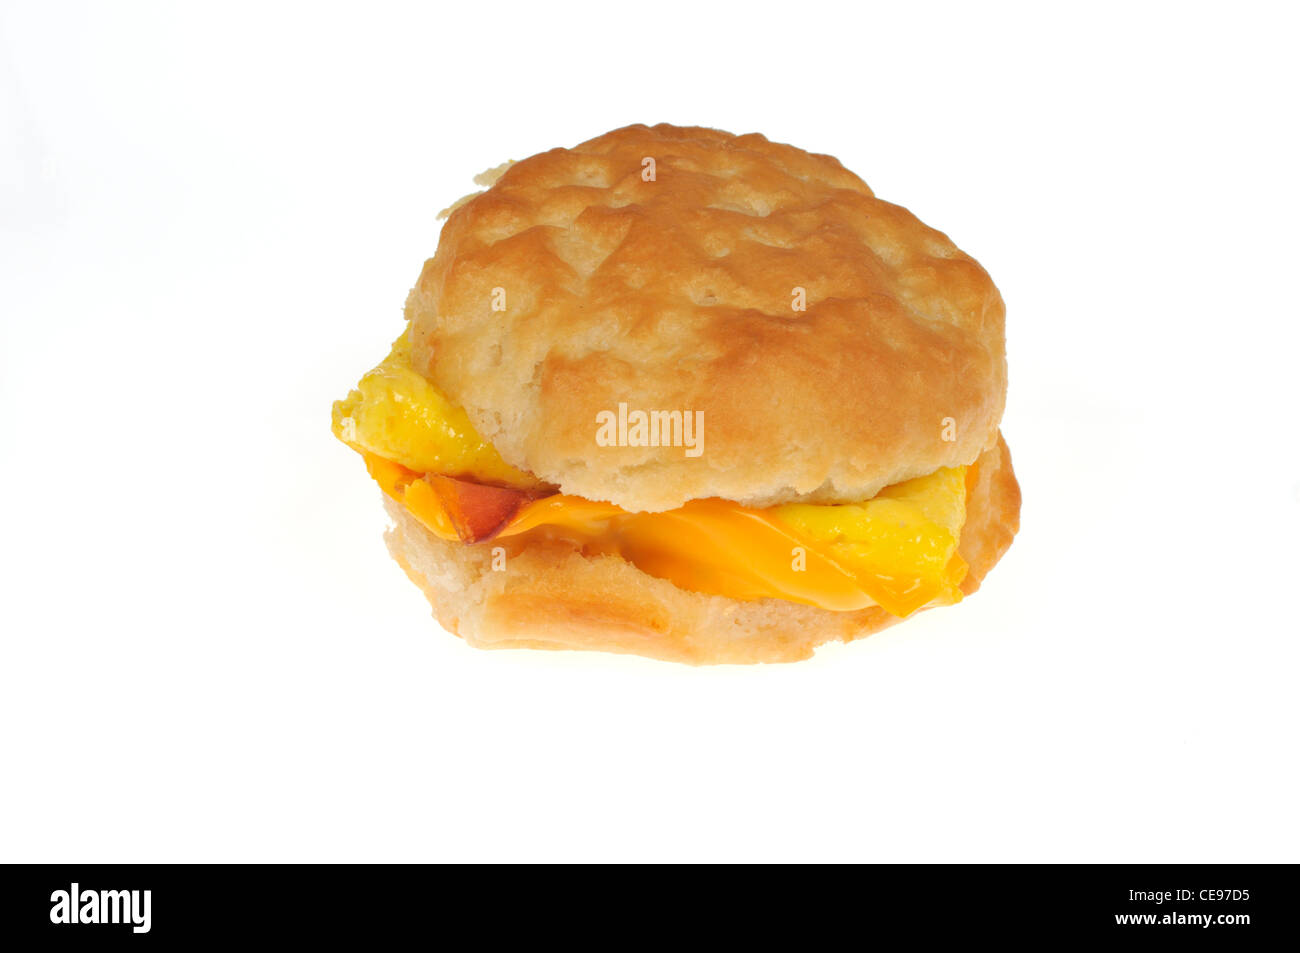 McDoanlds bacon egg and cheese biscuit sandwich on white background cut out. - Stock Image